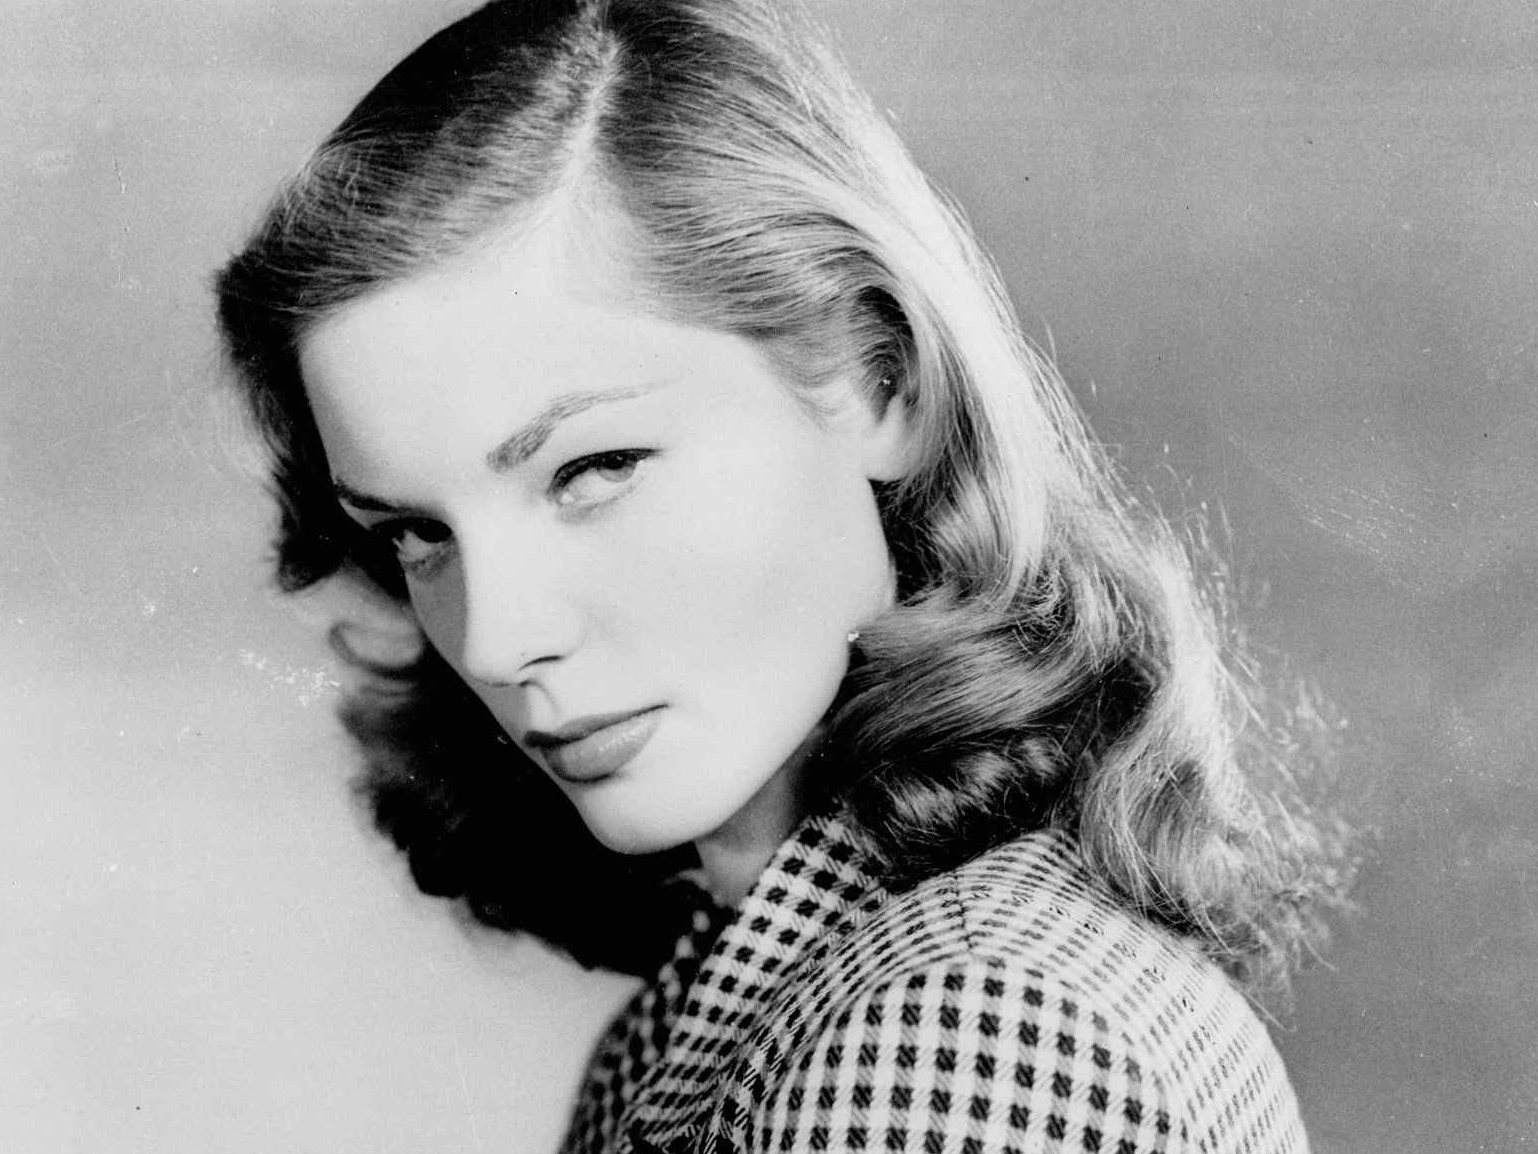 Lauren Bacall And The 'Sex? What Sex?' Kind Of Movie Sex